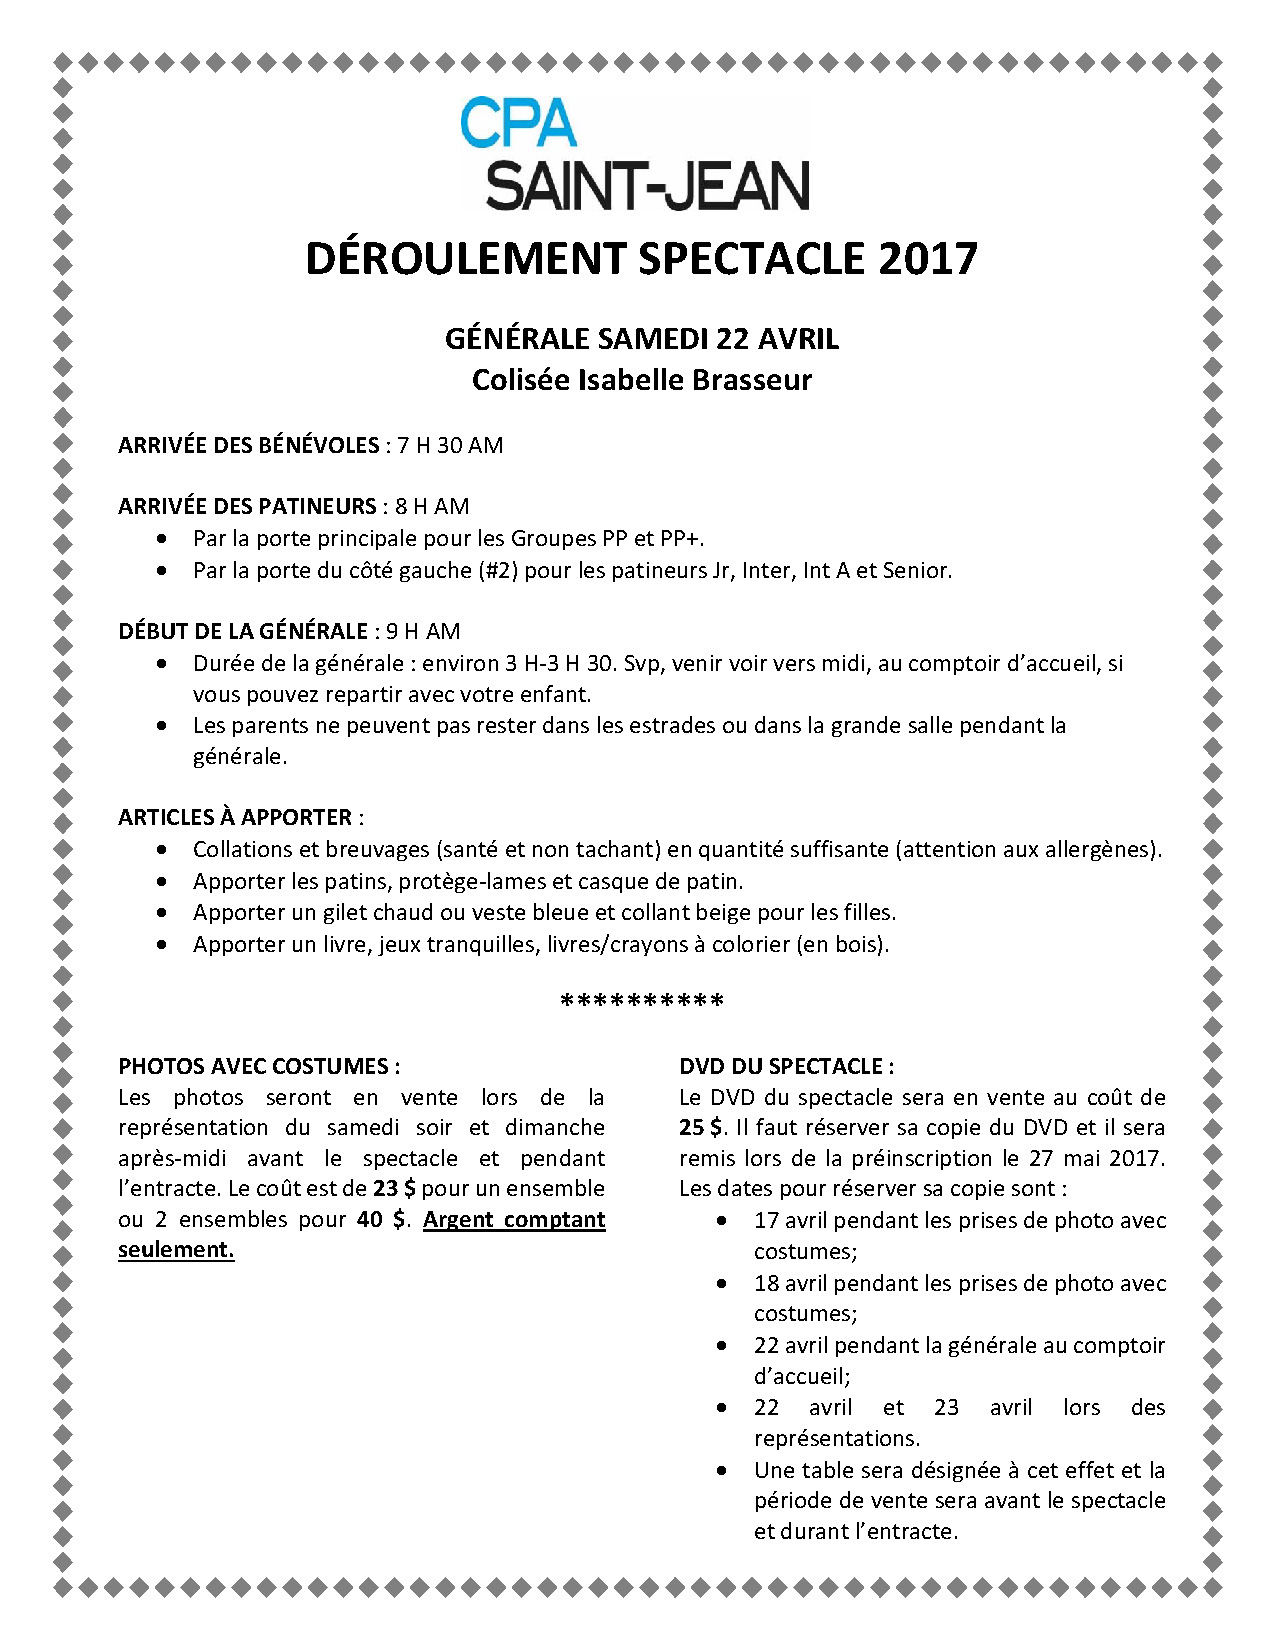 Deroulement_spectacle_generale_2017_V2_Page_1